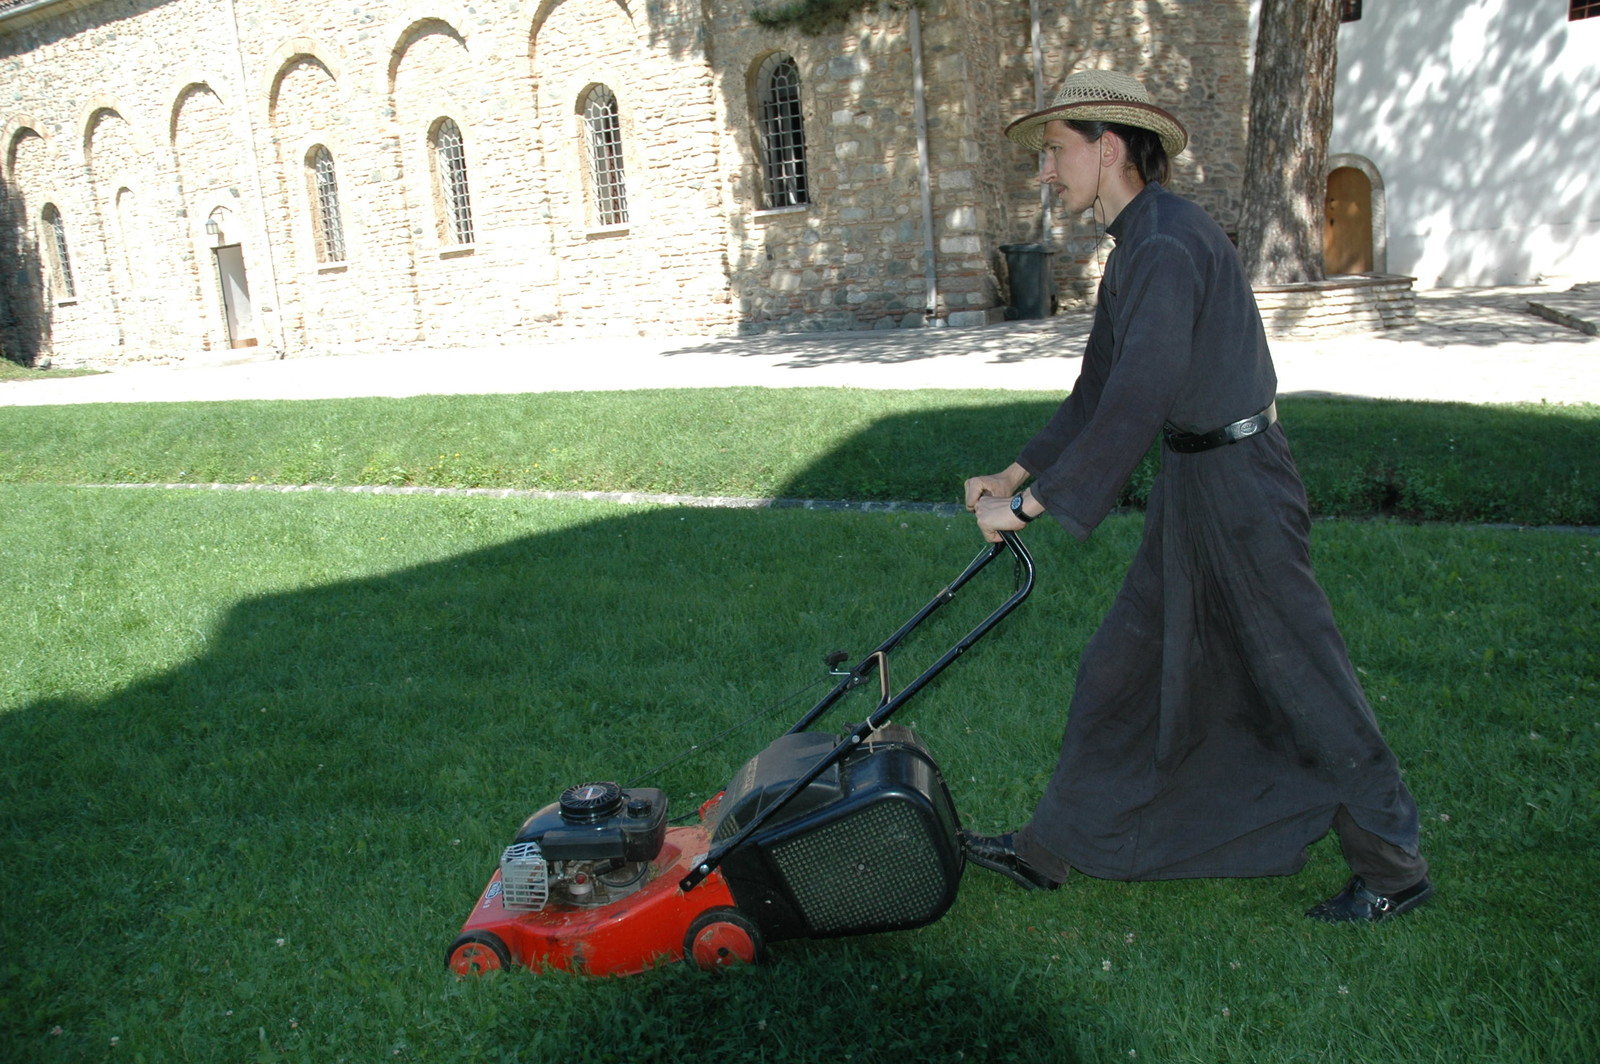 Mowing the grass in the churchyard